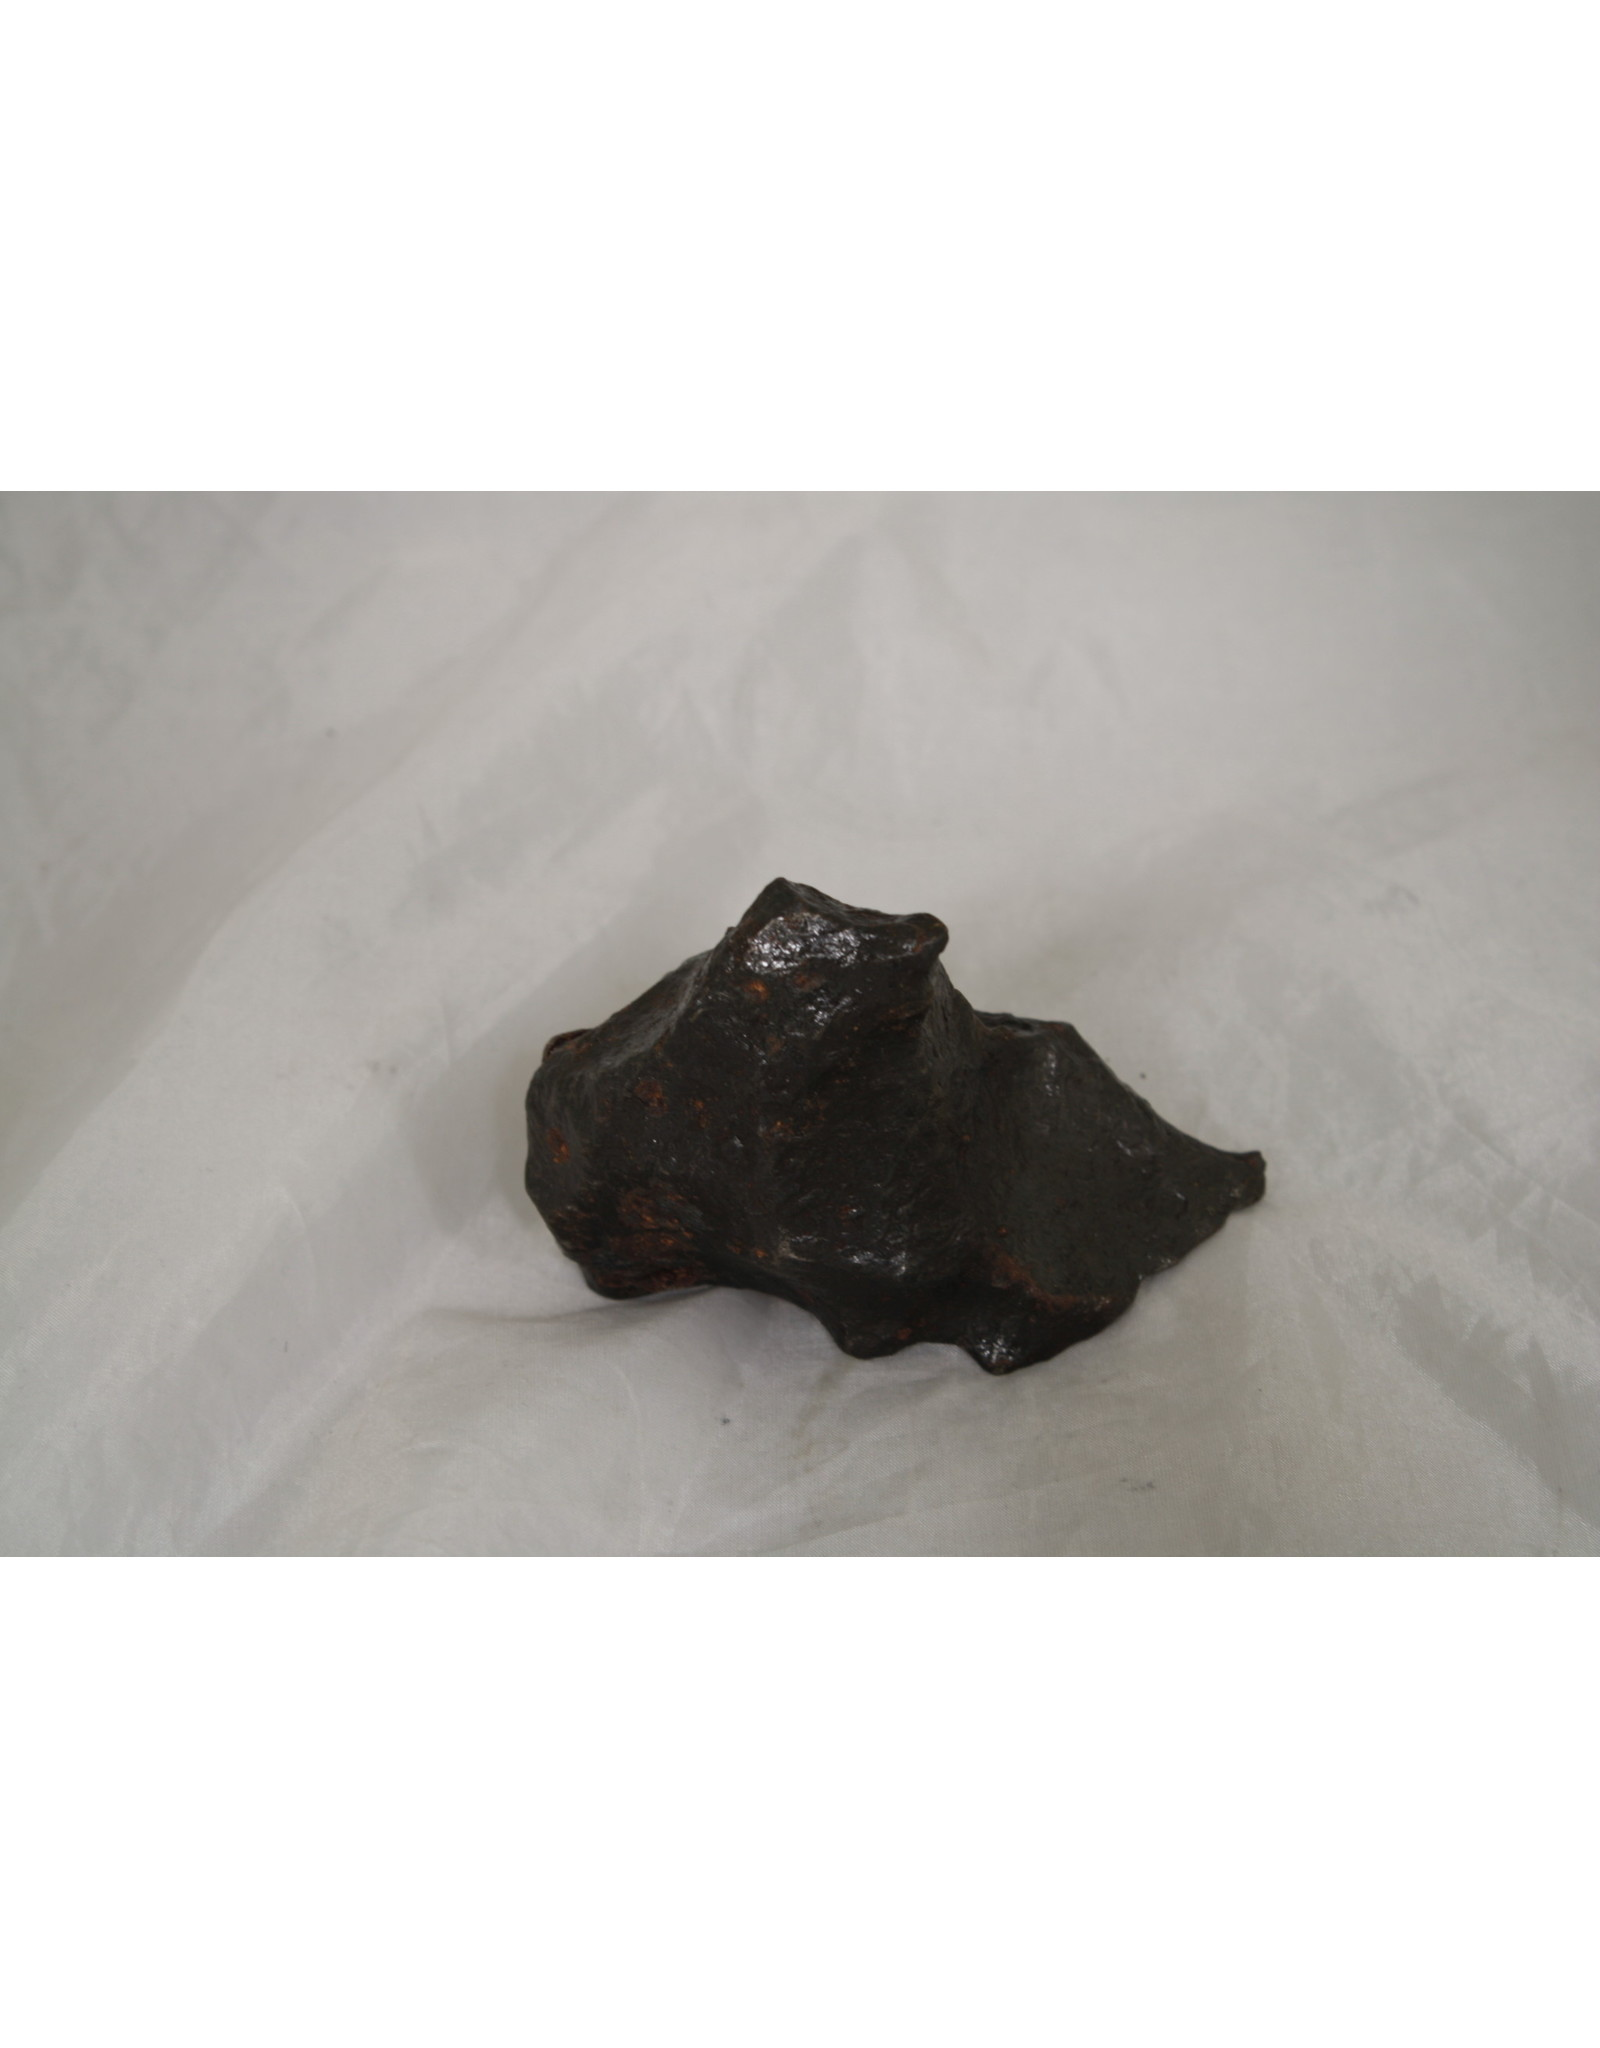 Canyon Diabolo Meteorite 903 grams